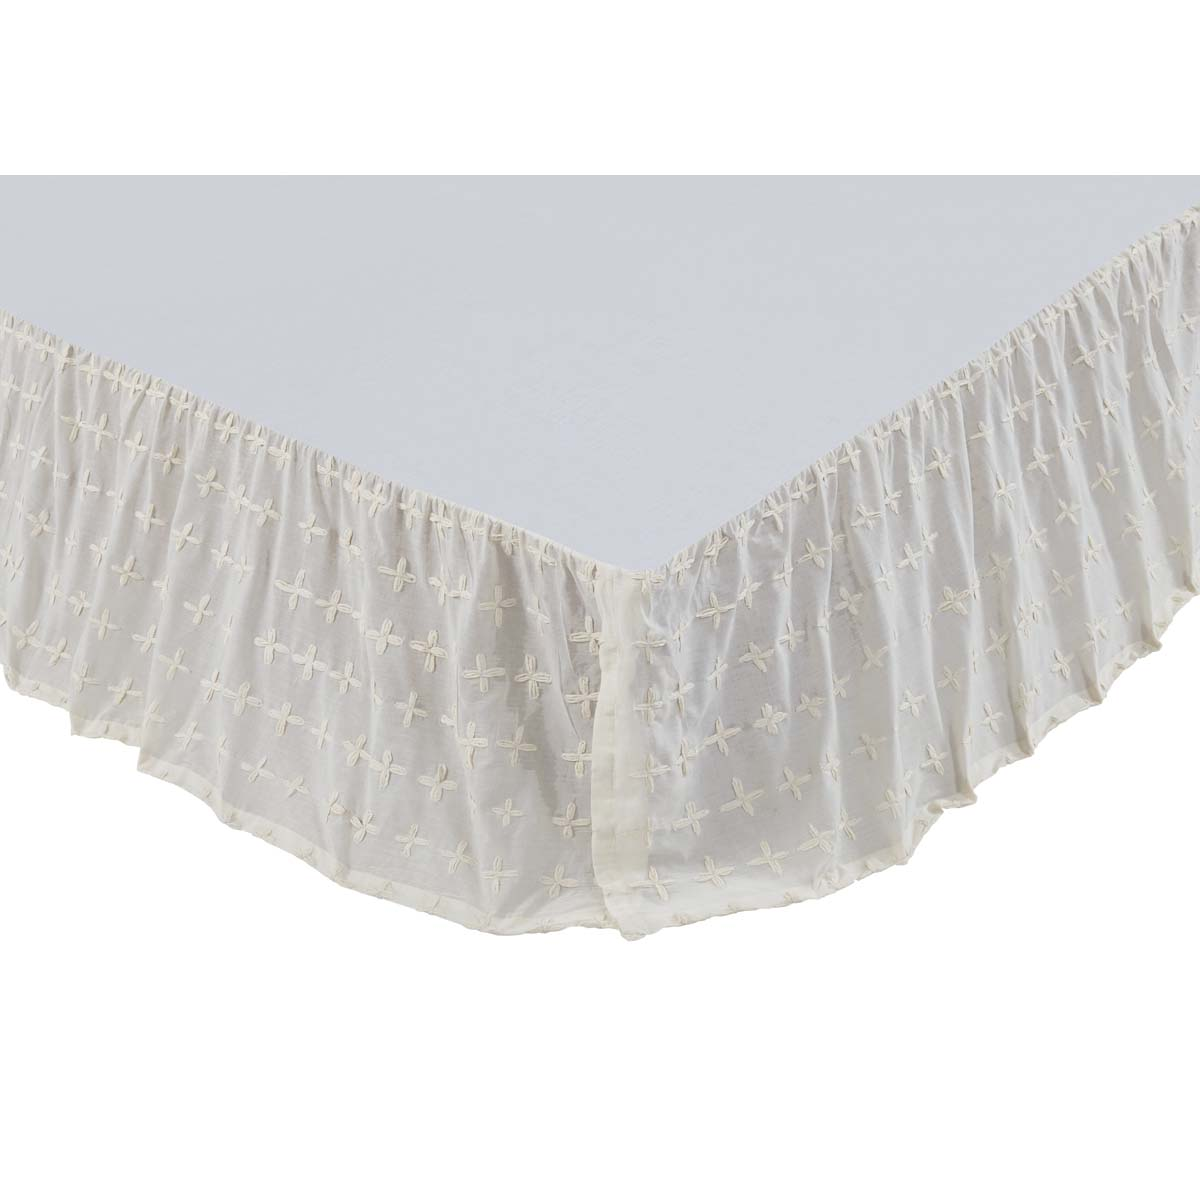 Willow Creme King Bed Skirt 78x80x16